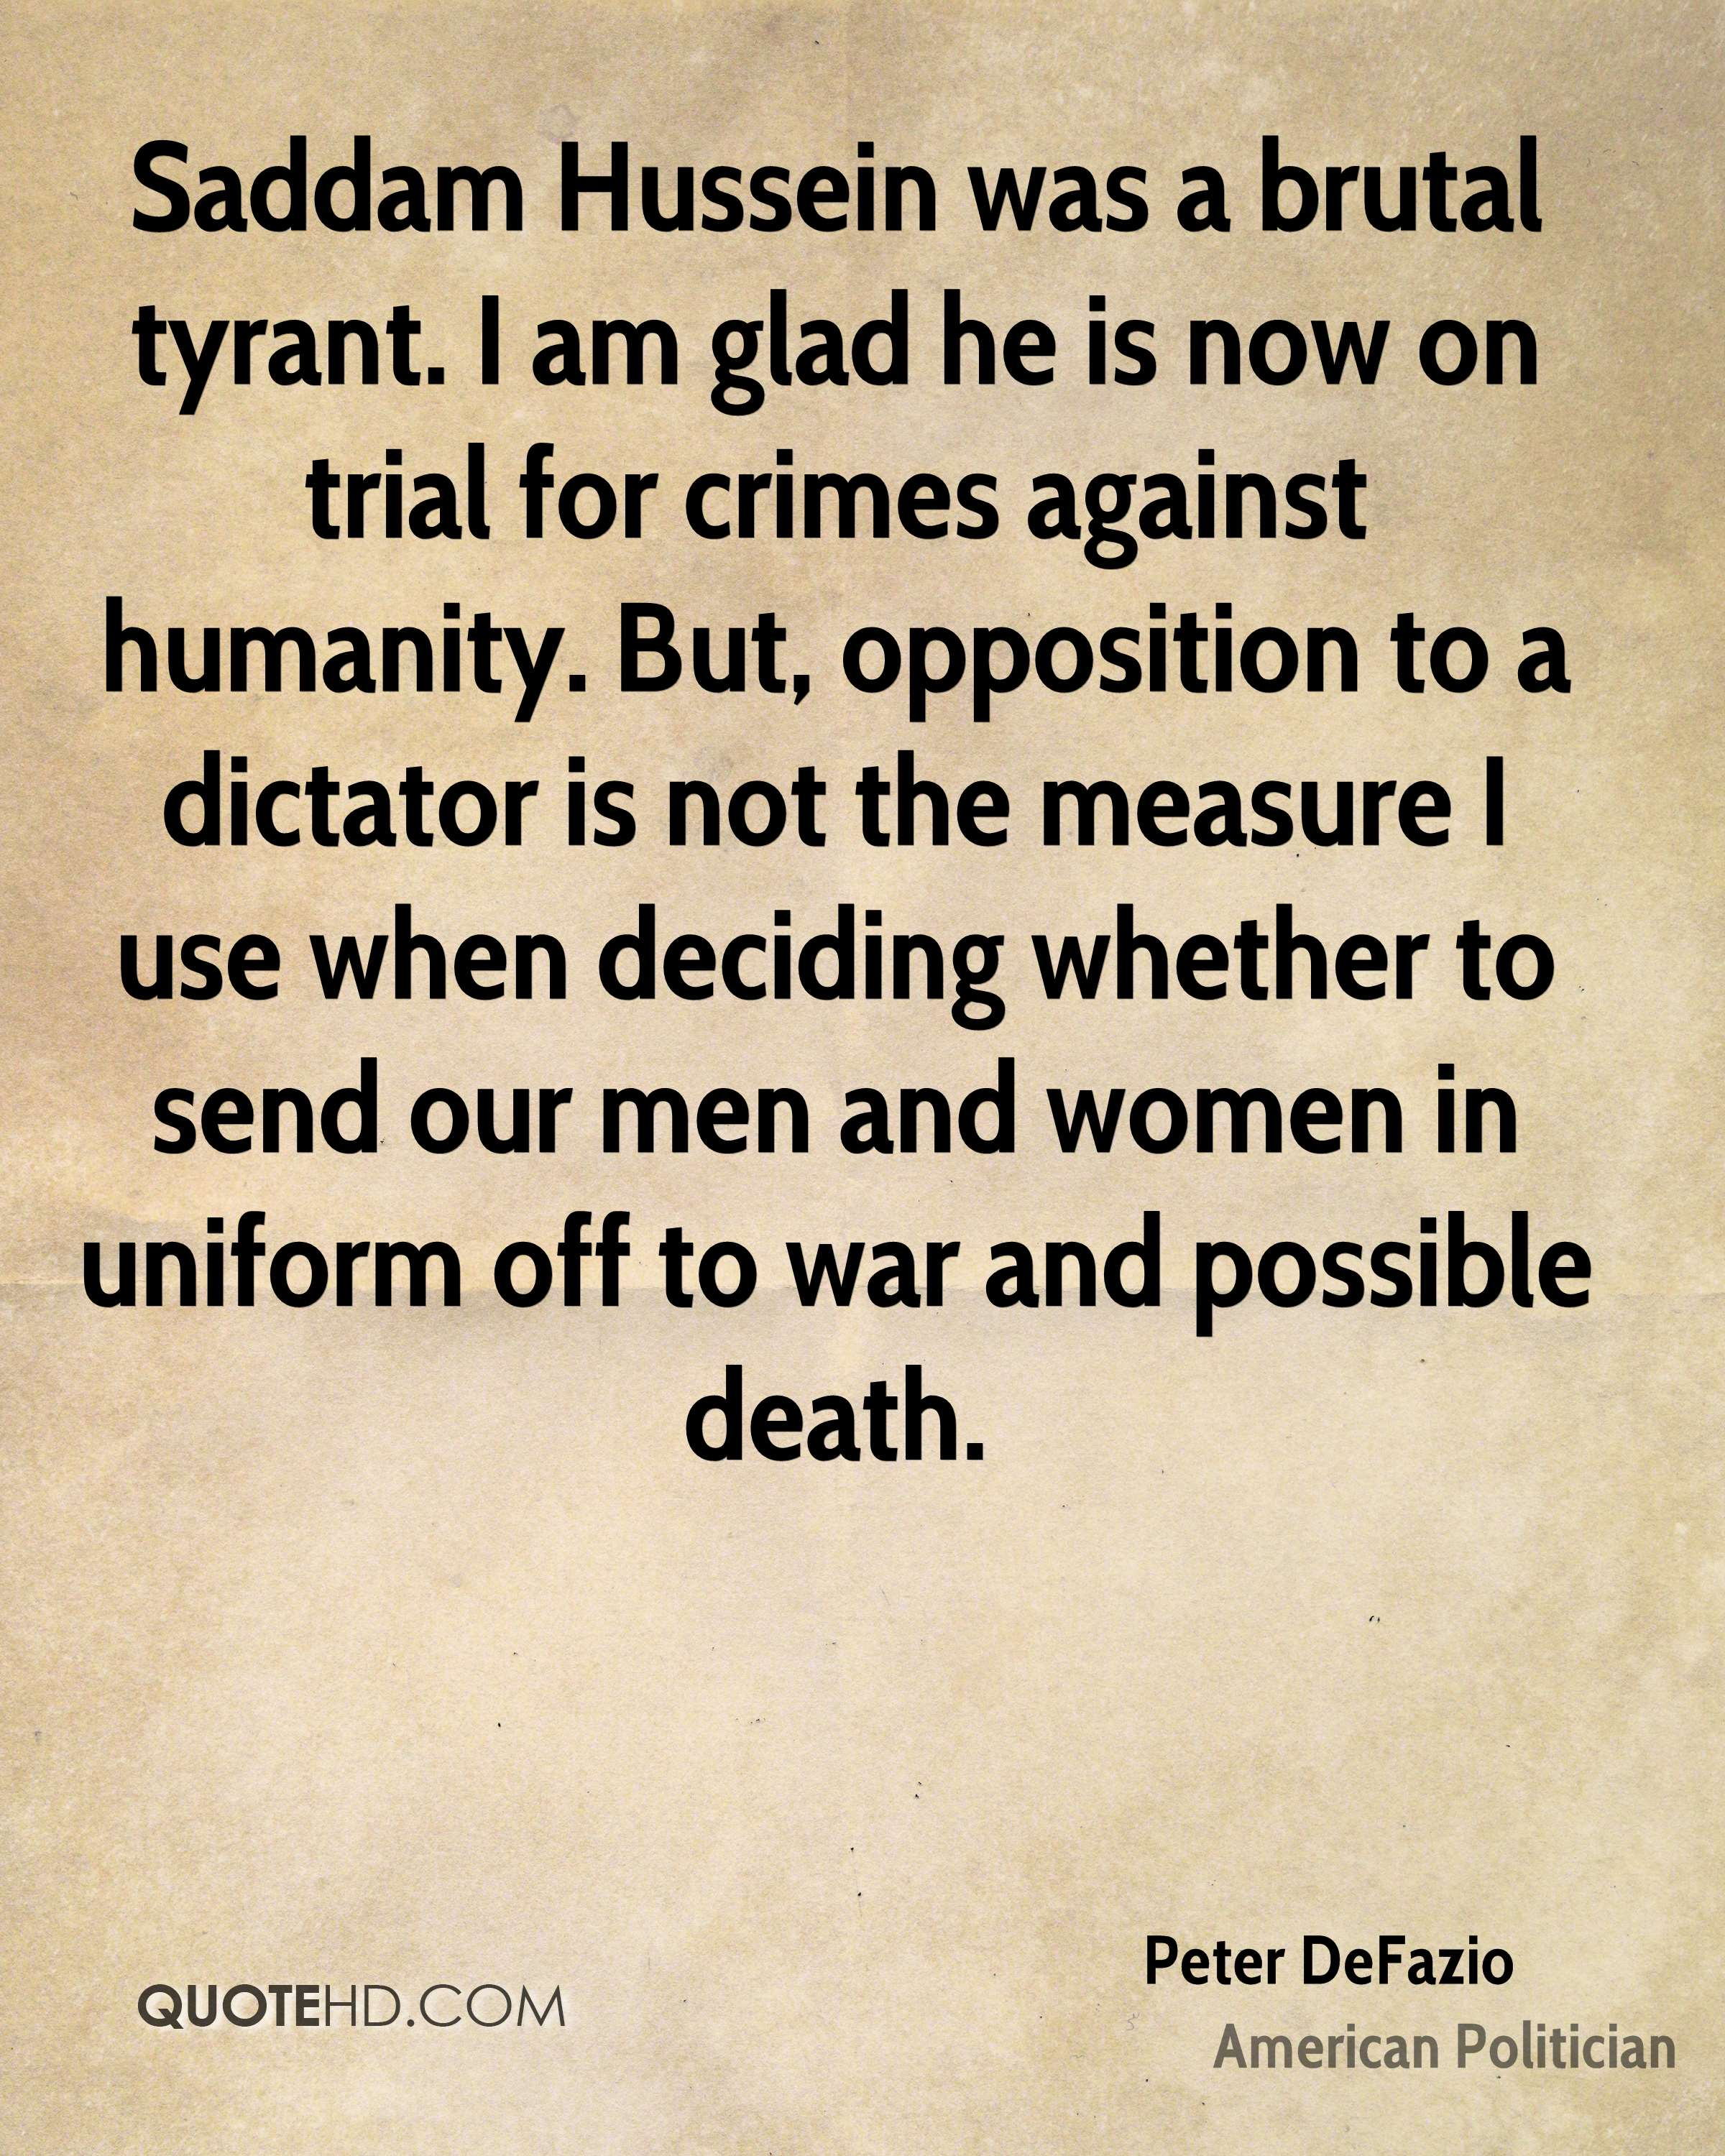 Saddam Hussein was a brutal tyrant. I am glad he is now on trial for crimes against humanity. But, opposition to a dictator is not the measure I use when deciding whether to send our men and women in uniform off to war and possible death.